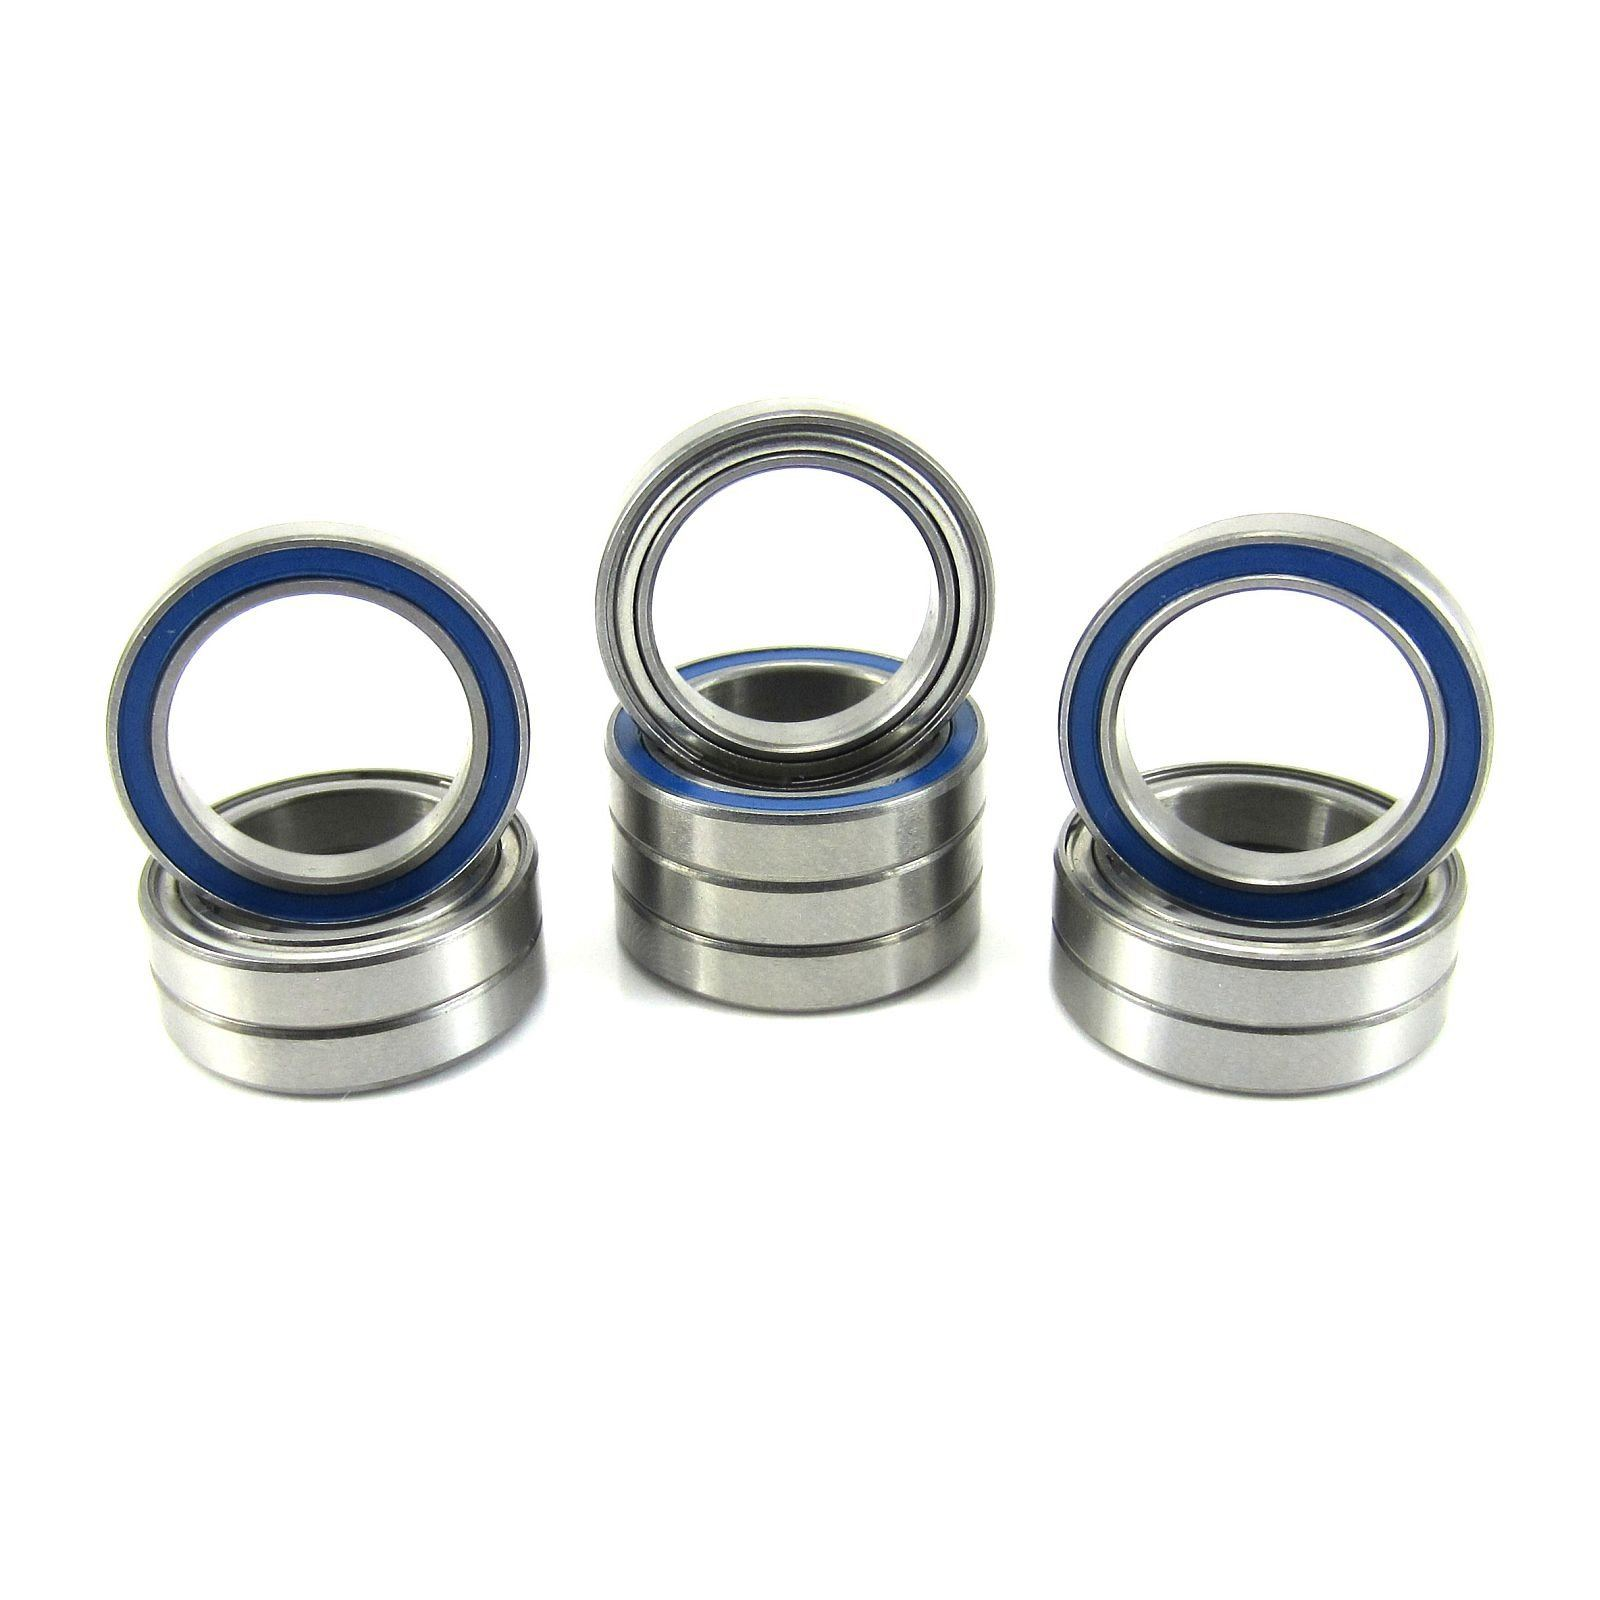 TRB RC 15x21x4mm Precision Ball Bearings ABEC 5 Hybrid Seals (10) - trb-rc-bearings